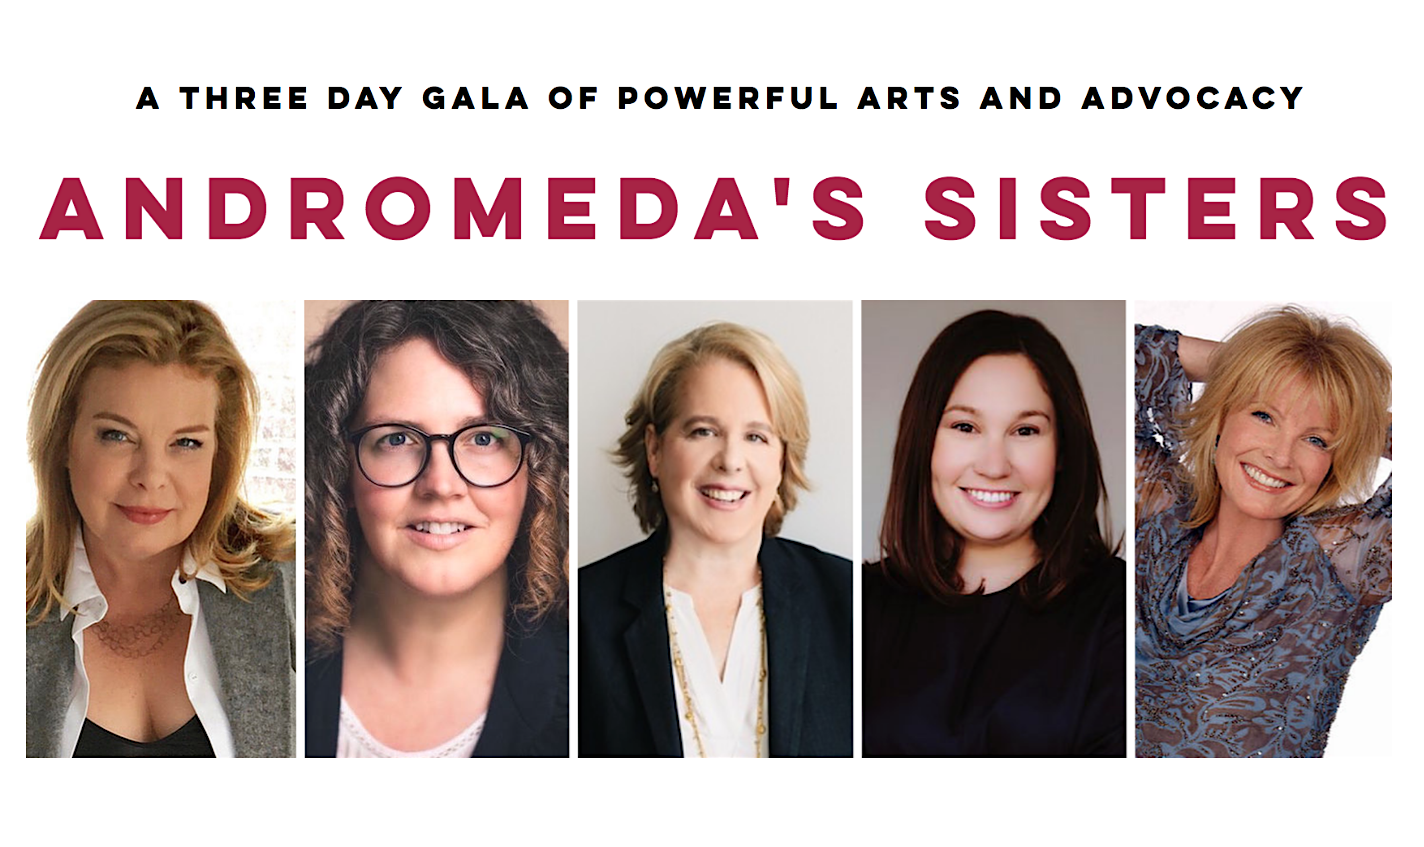 Featured speakers at Andromeda's Sisters: (from left to right) Cathrine Curtin (Orange is the New Black), Sarah Greenman (StateraArts), Roberta Kaplan (renowned litigator), Amy Spitalnick (ED at Integrity First for America), and Ellen Dolan (As the World Turns).